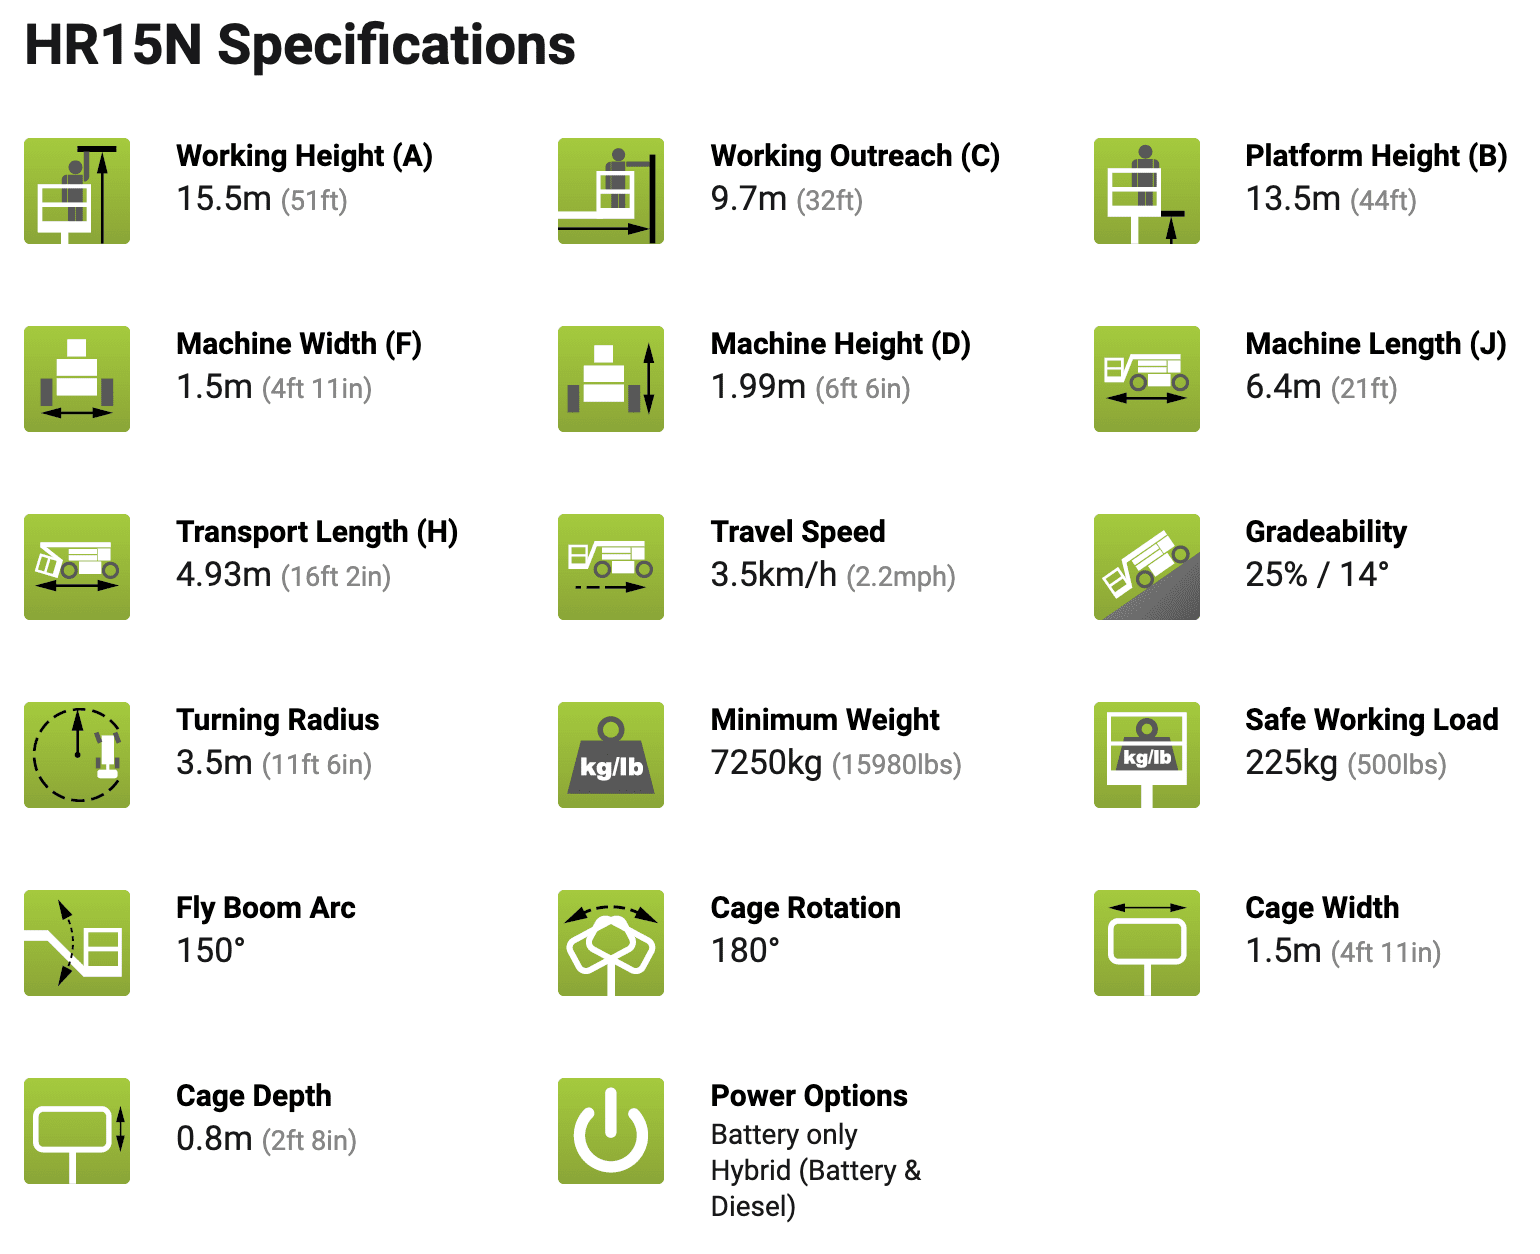 specifications HR15N